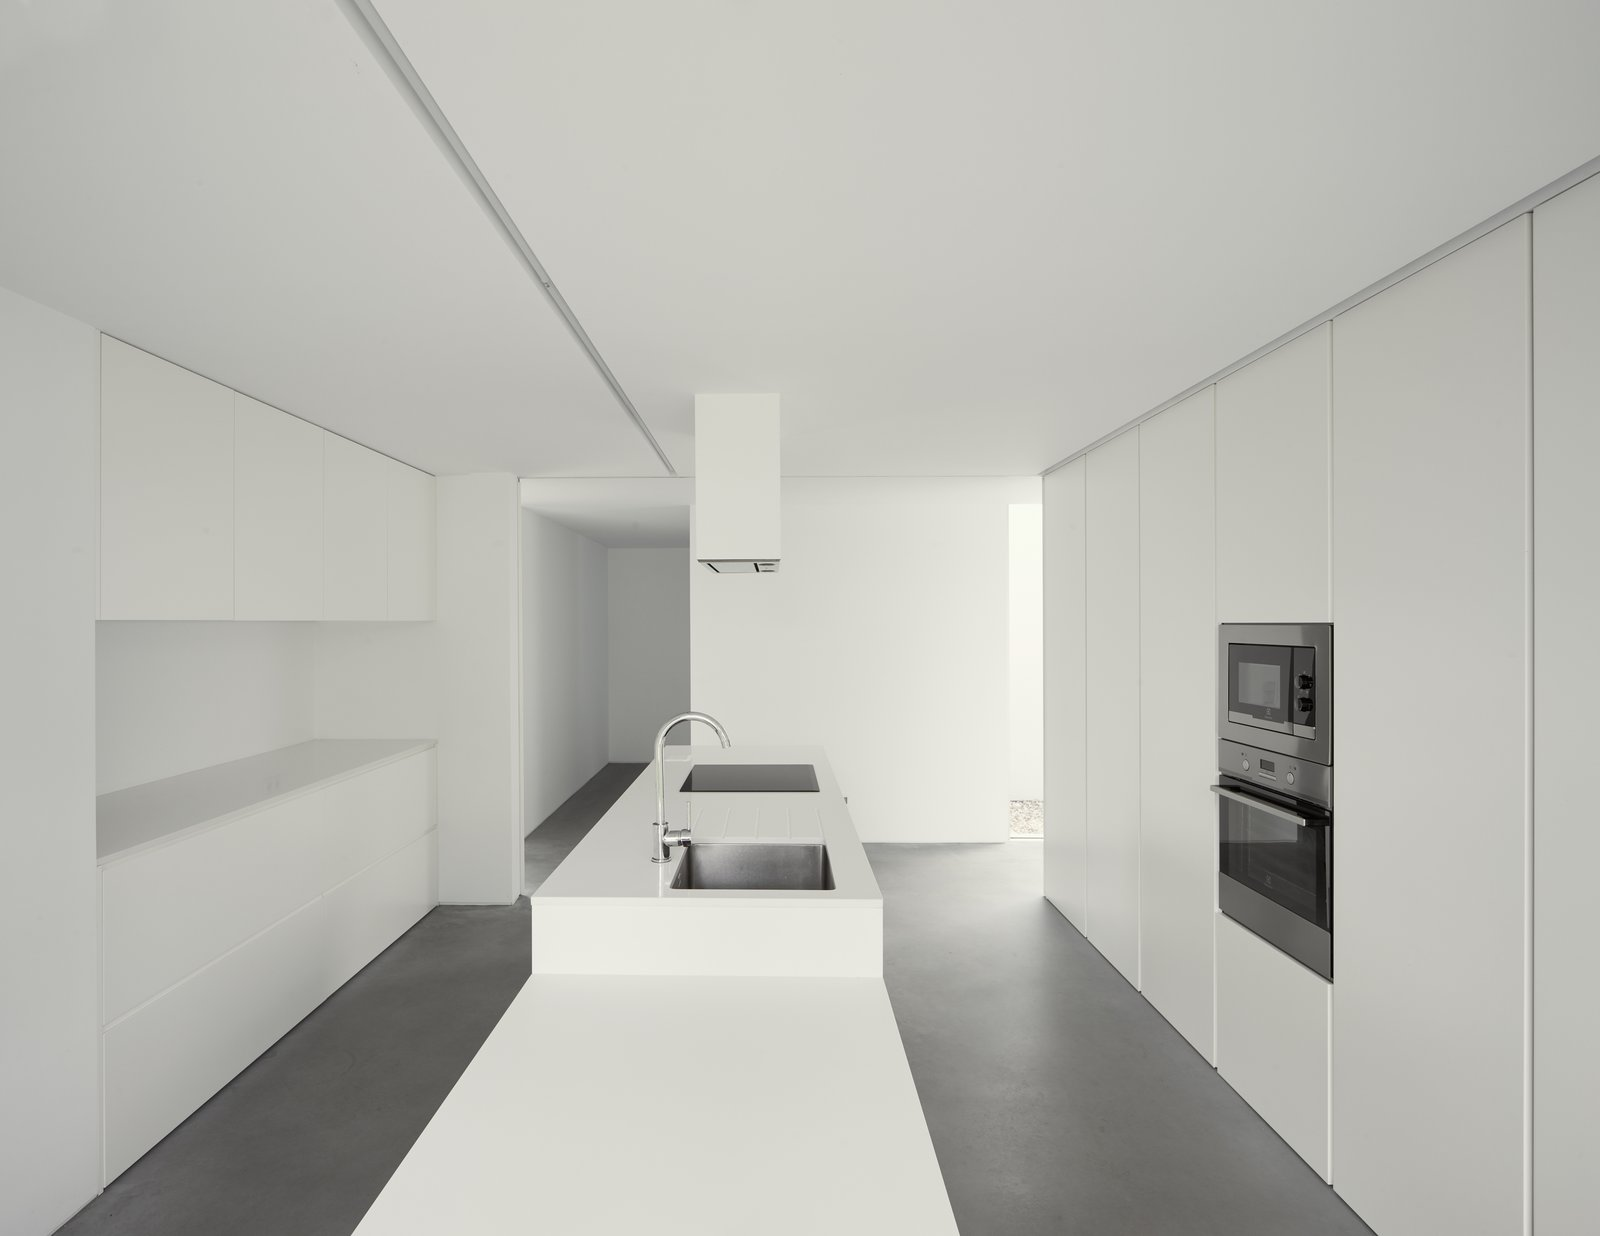 Tagged: Kitchen, Engineered Quartz Counter, White Cabinet, Concrete Floor, Cooktops, Undermount Sink, and Wall Oven. Fanu House by Bruno Lucas